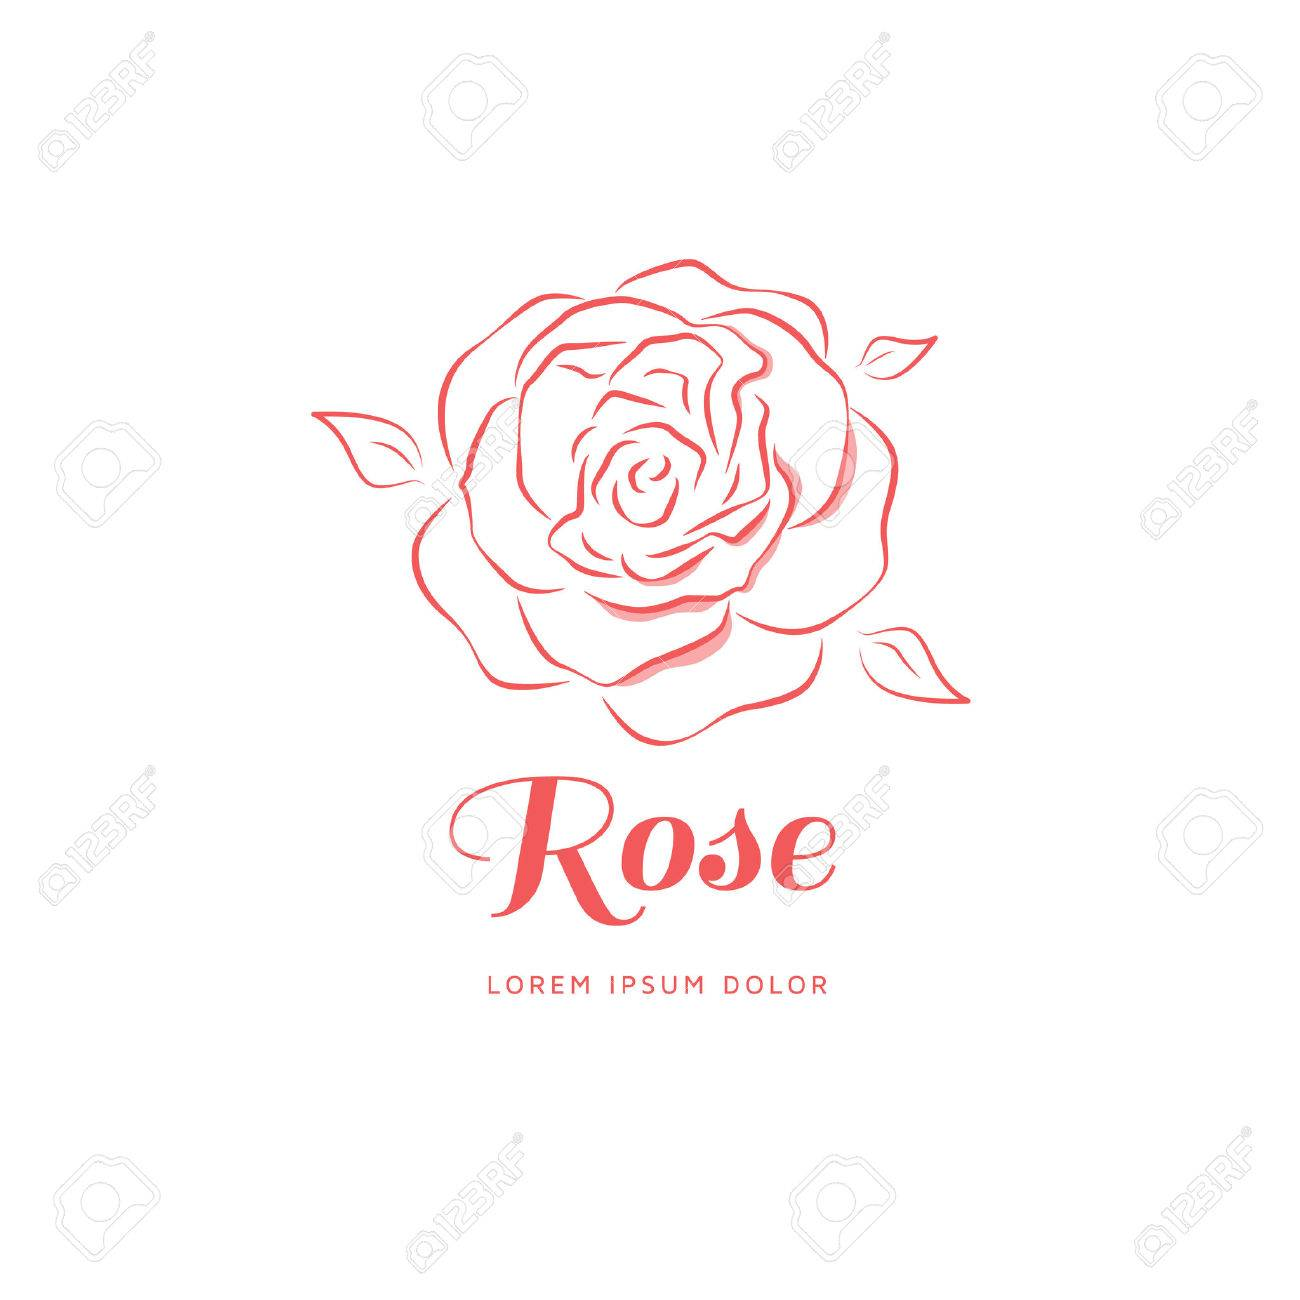 Rose in a linear style. Logo for a beauty salon. Vector illustration - 51330018